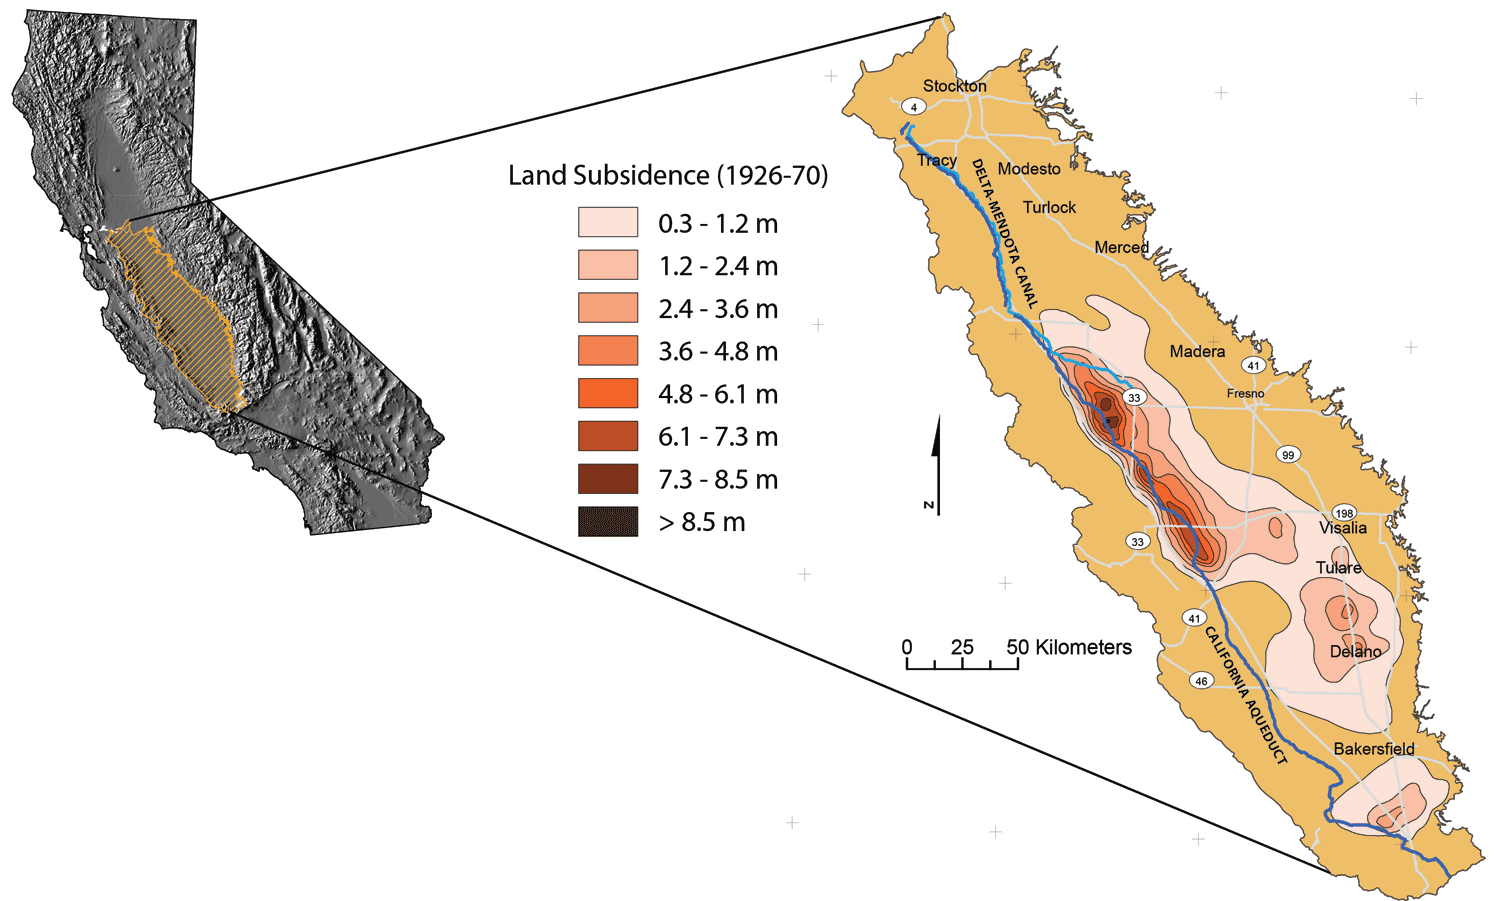 USGS Subsidence in CA Central Valley